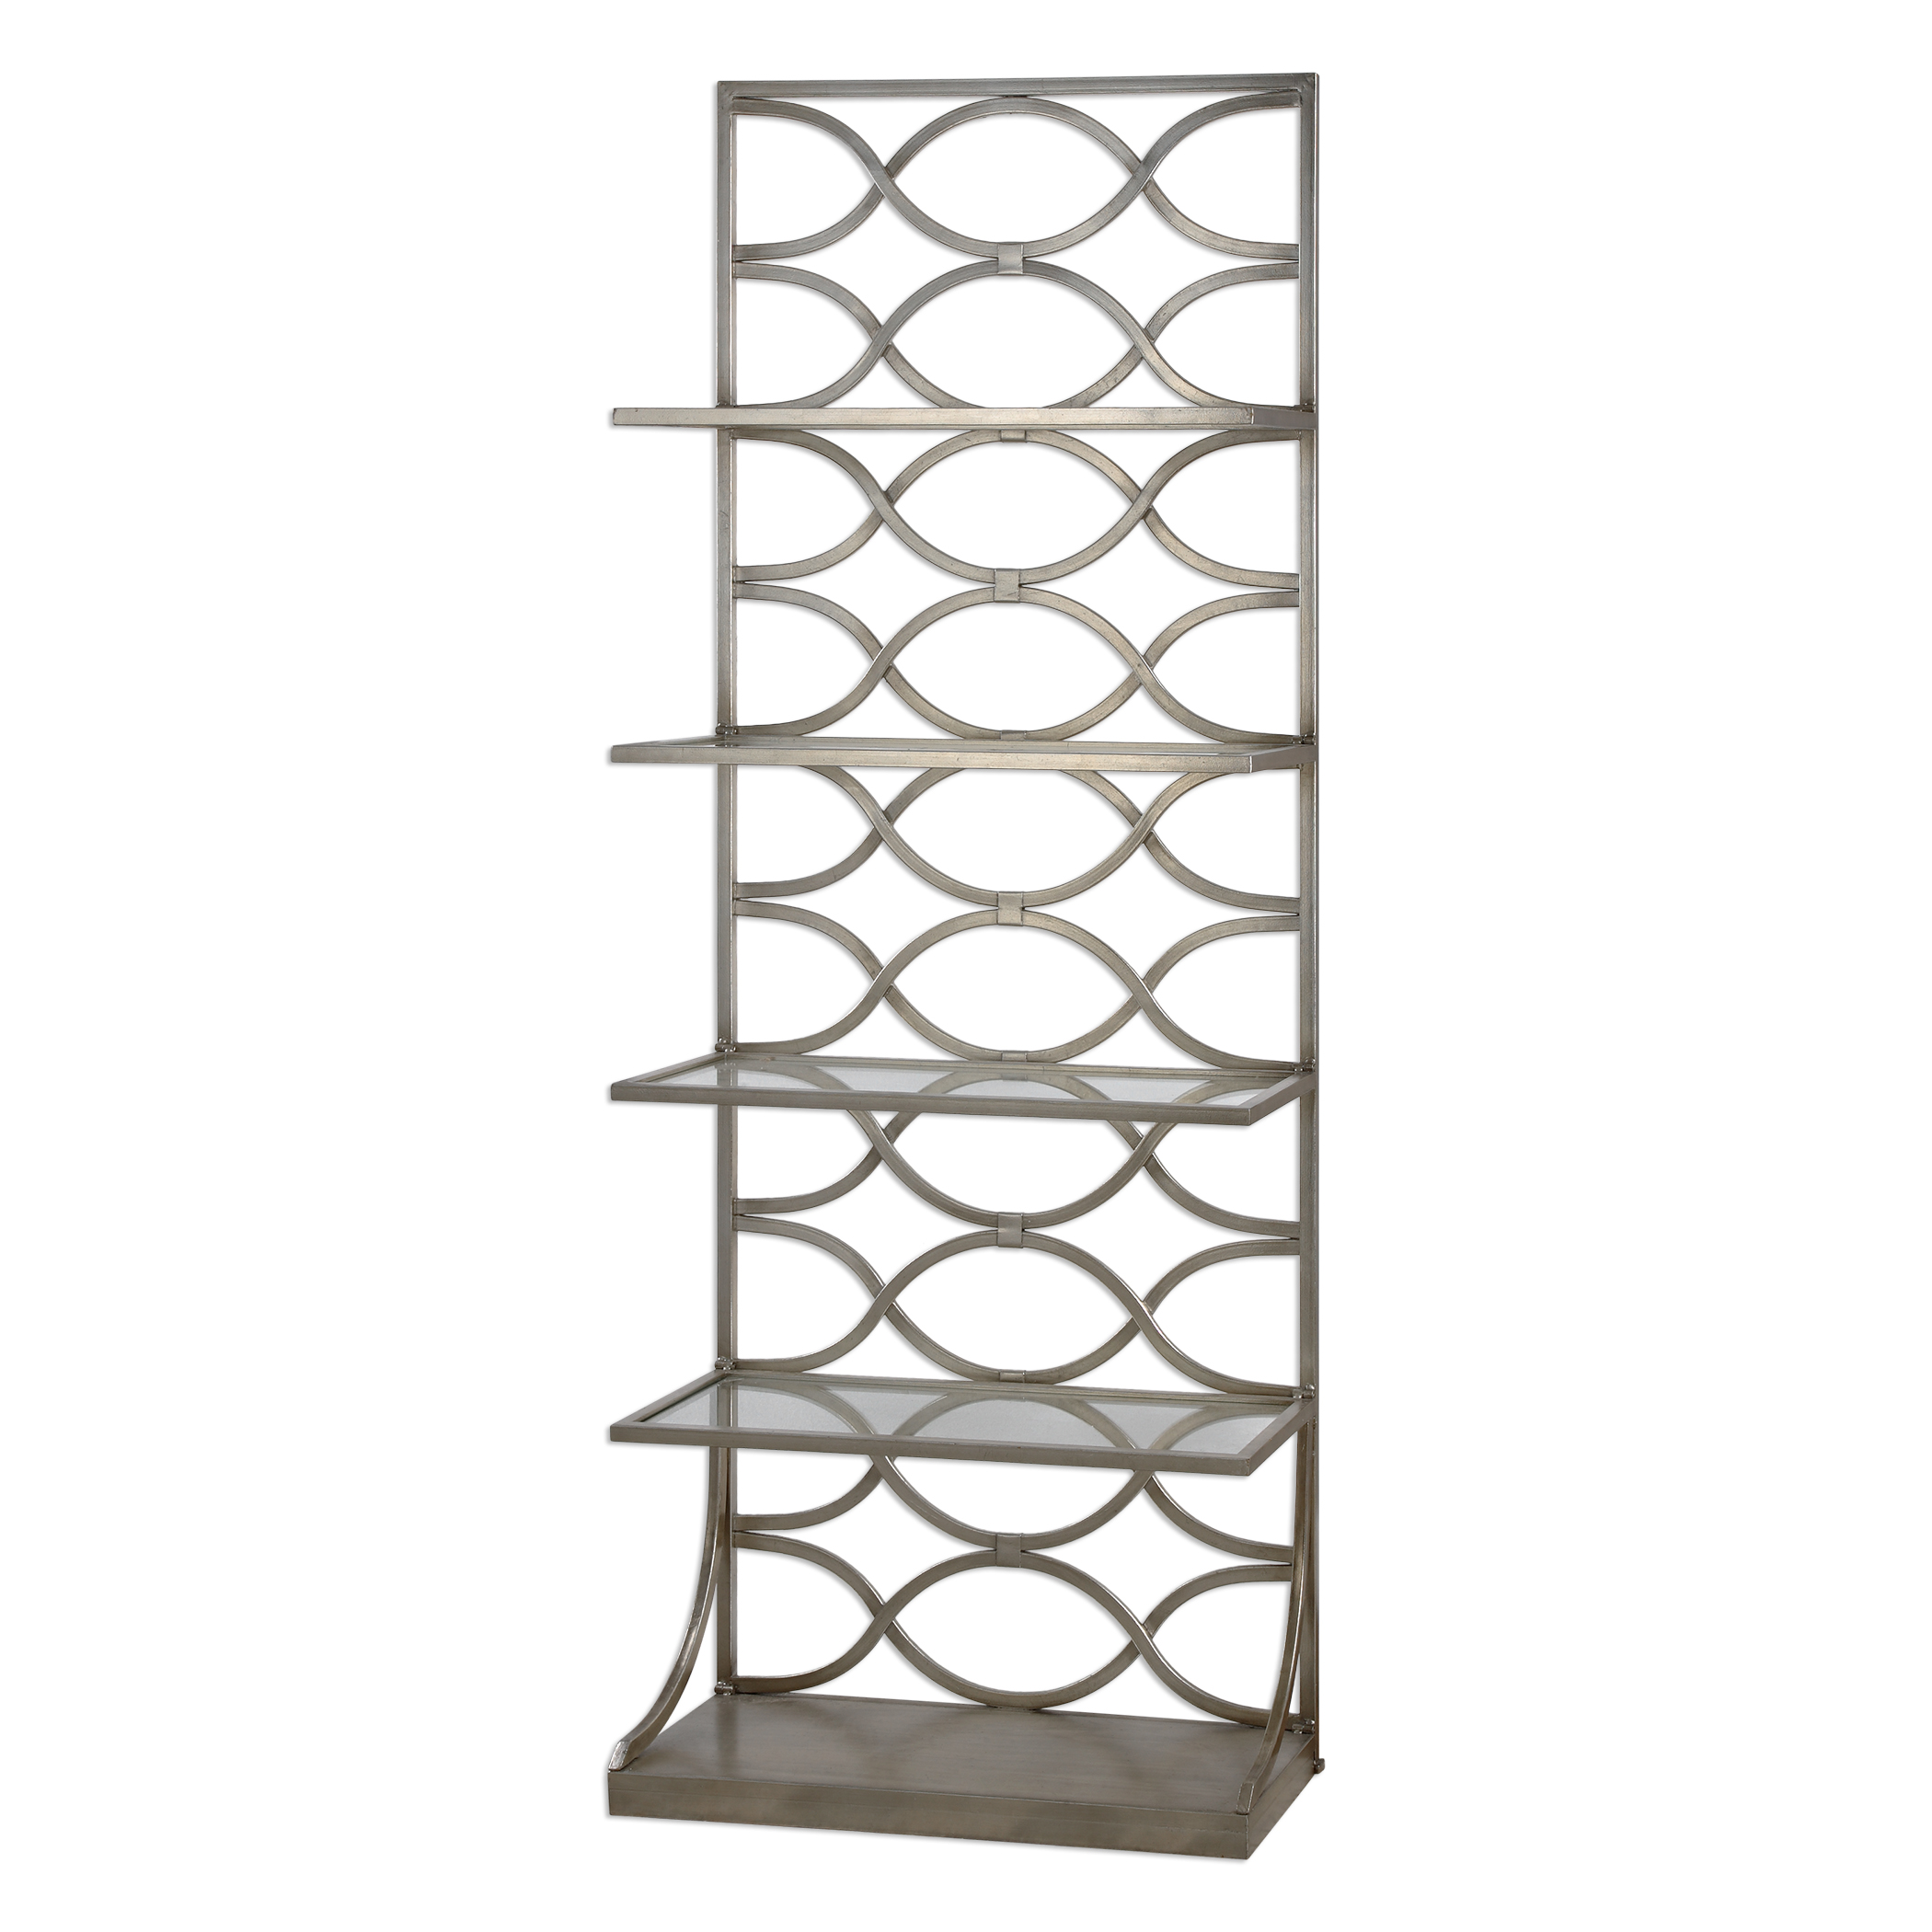 Uttermost Accent Furniture Lashaya Silver Etagere - Item Number: 24622